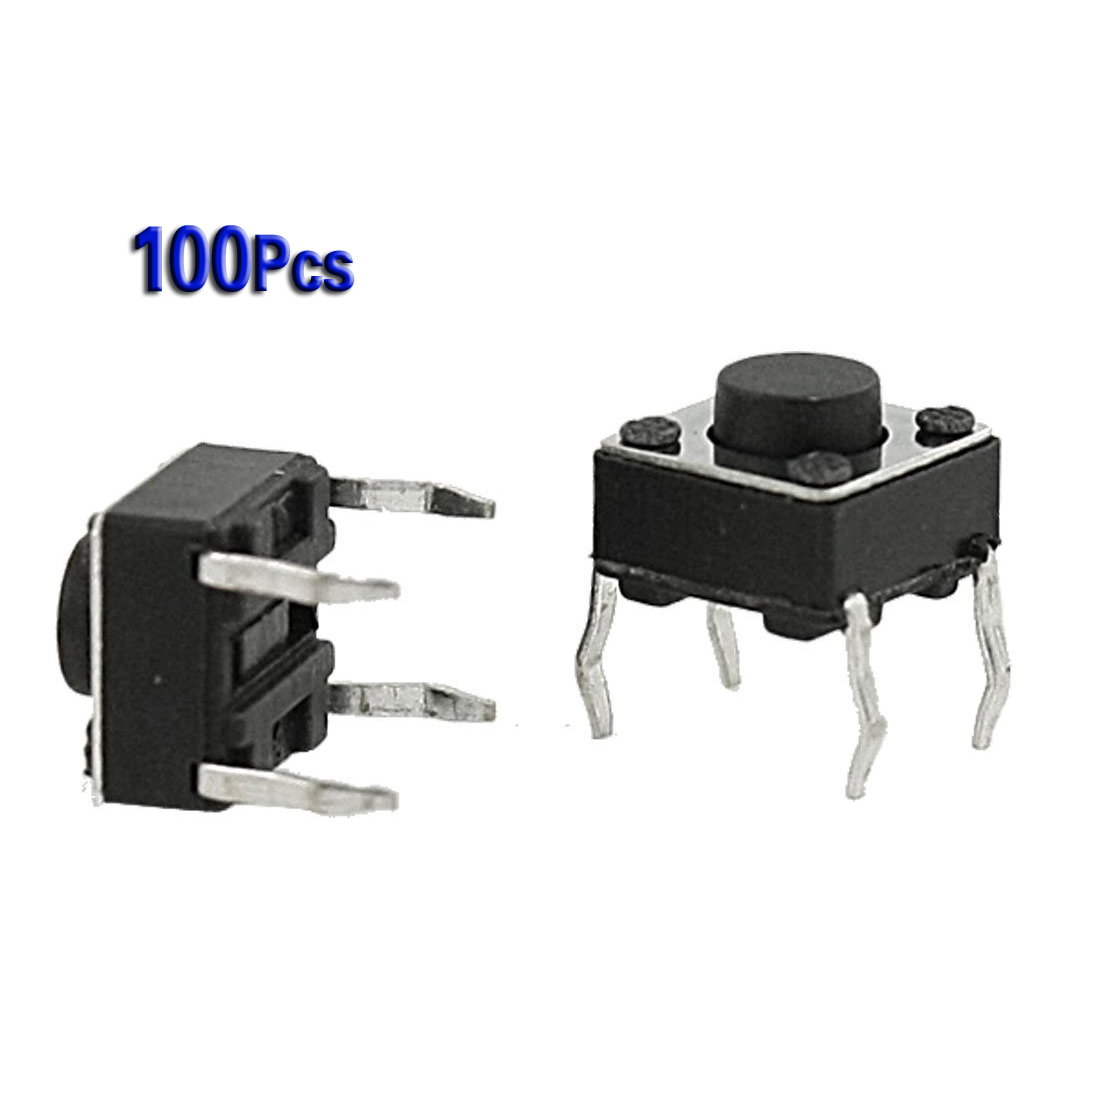 Promotion!Amico 100 Pcs 6x6x4.5mm Panel PCB Momentary Tactile Tact Push Button Switch 4 Pin DIP стоимость